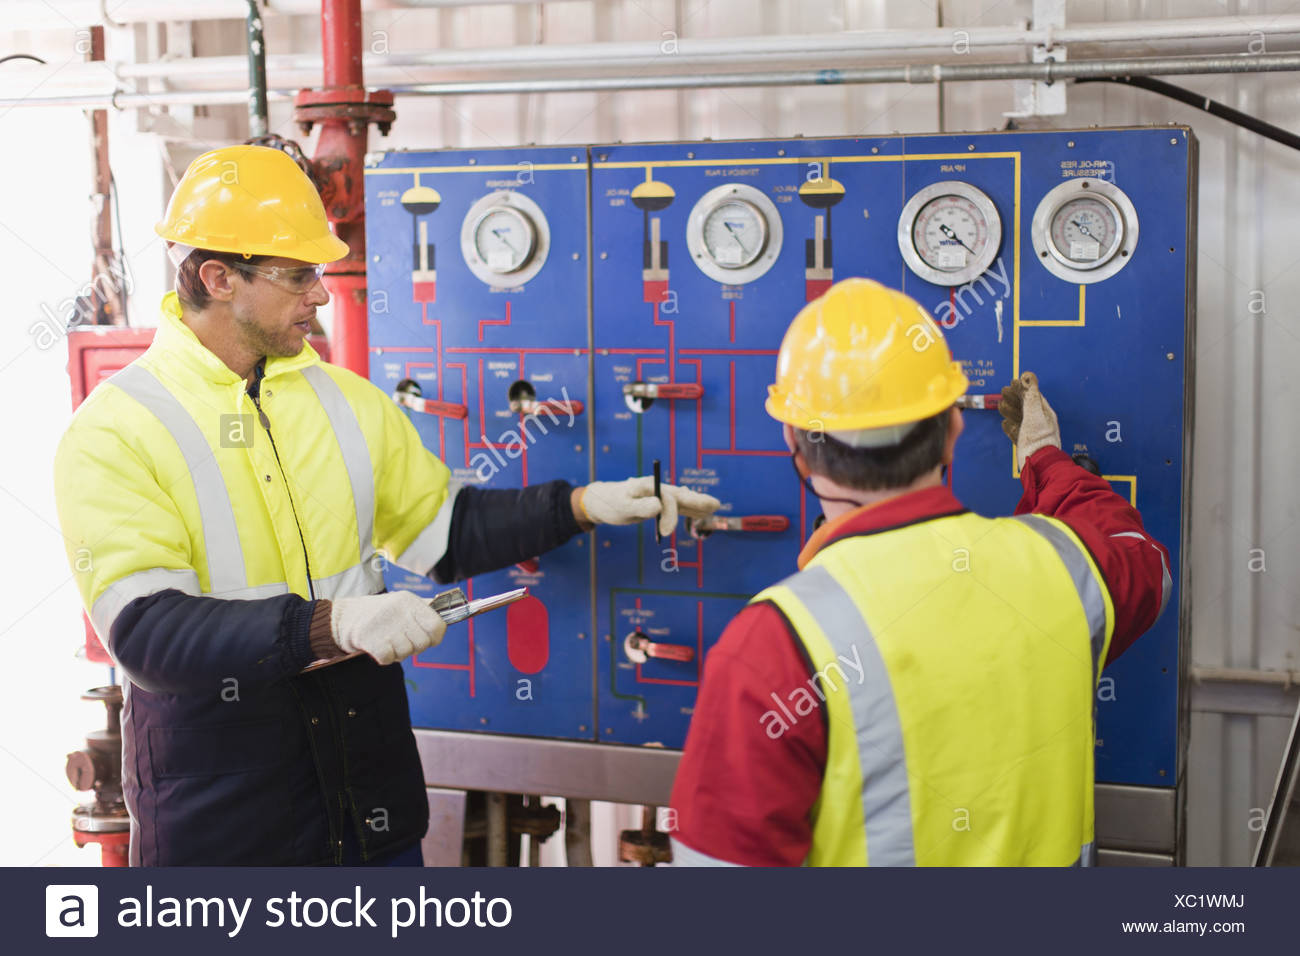 Workers checking gauges on oil rig - Stock Image